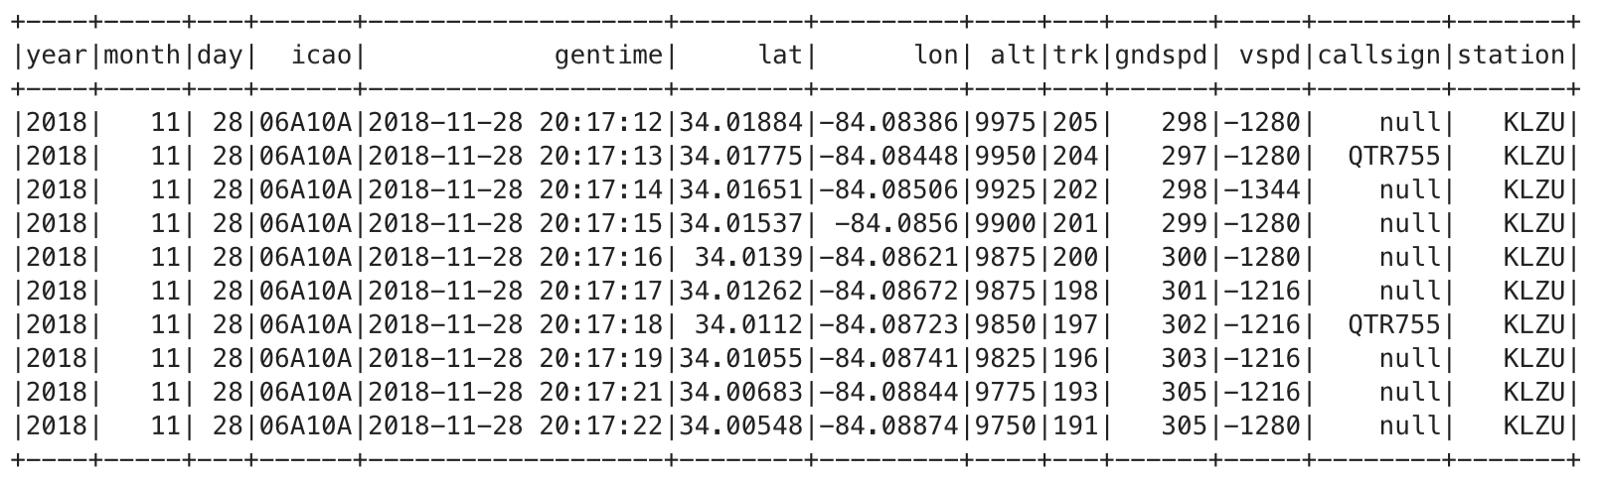 Exporting Cassandra time series data to S3 for data analysis with Spark